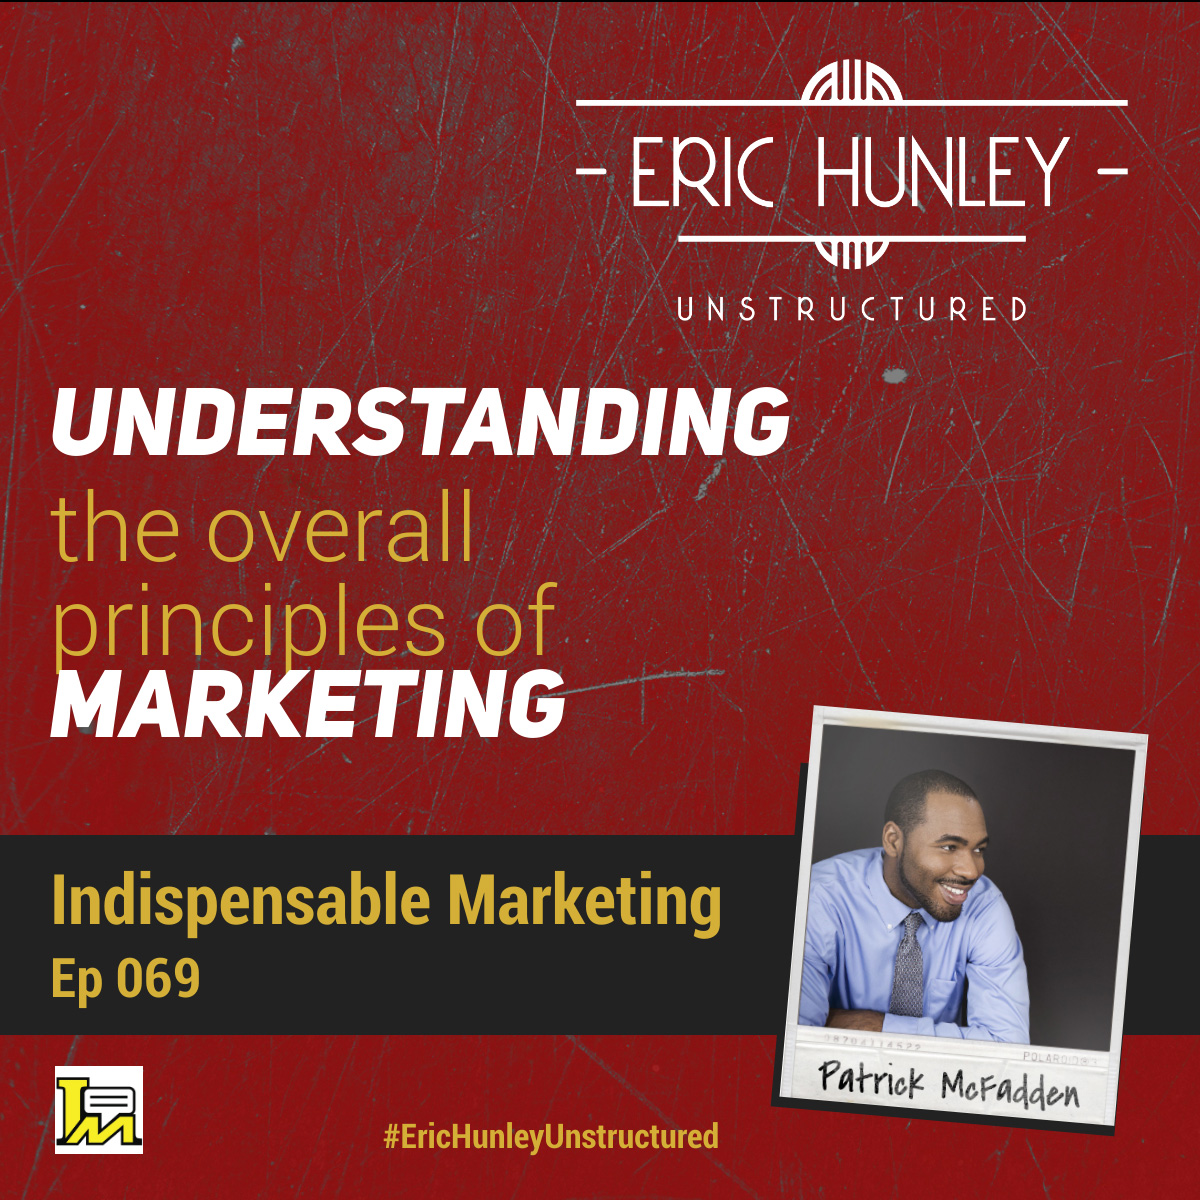 Eric Hunley Unstructured Podcast - 069 Patrick McFadden Square Post